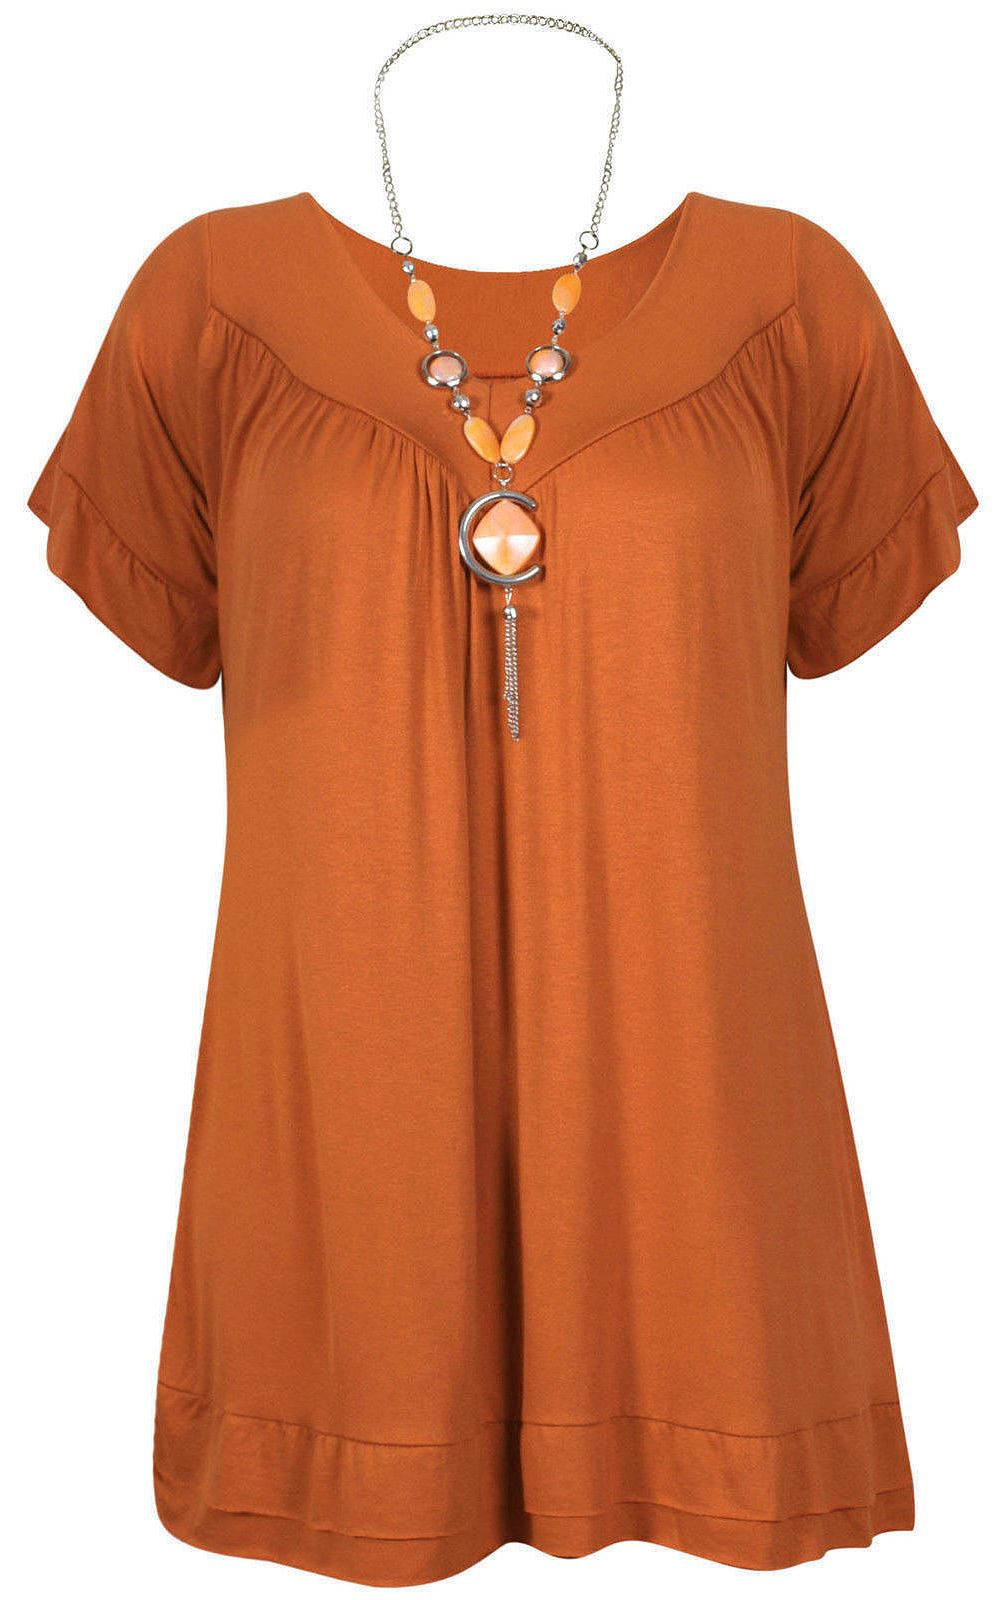 Update your everyday, essential wardrobe with affordable and versatile tunic tops from Old Navy. Women's Tunics. Choose comfort, style, and affordability with tunic shirts from Old Navy.